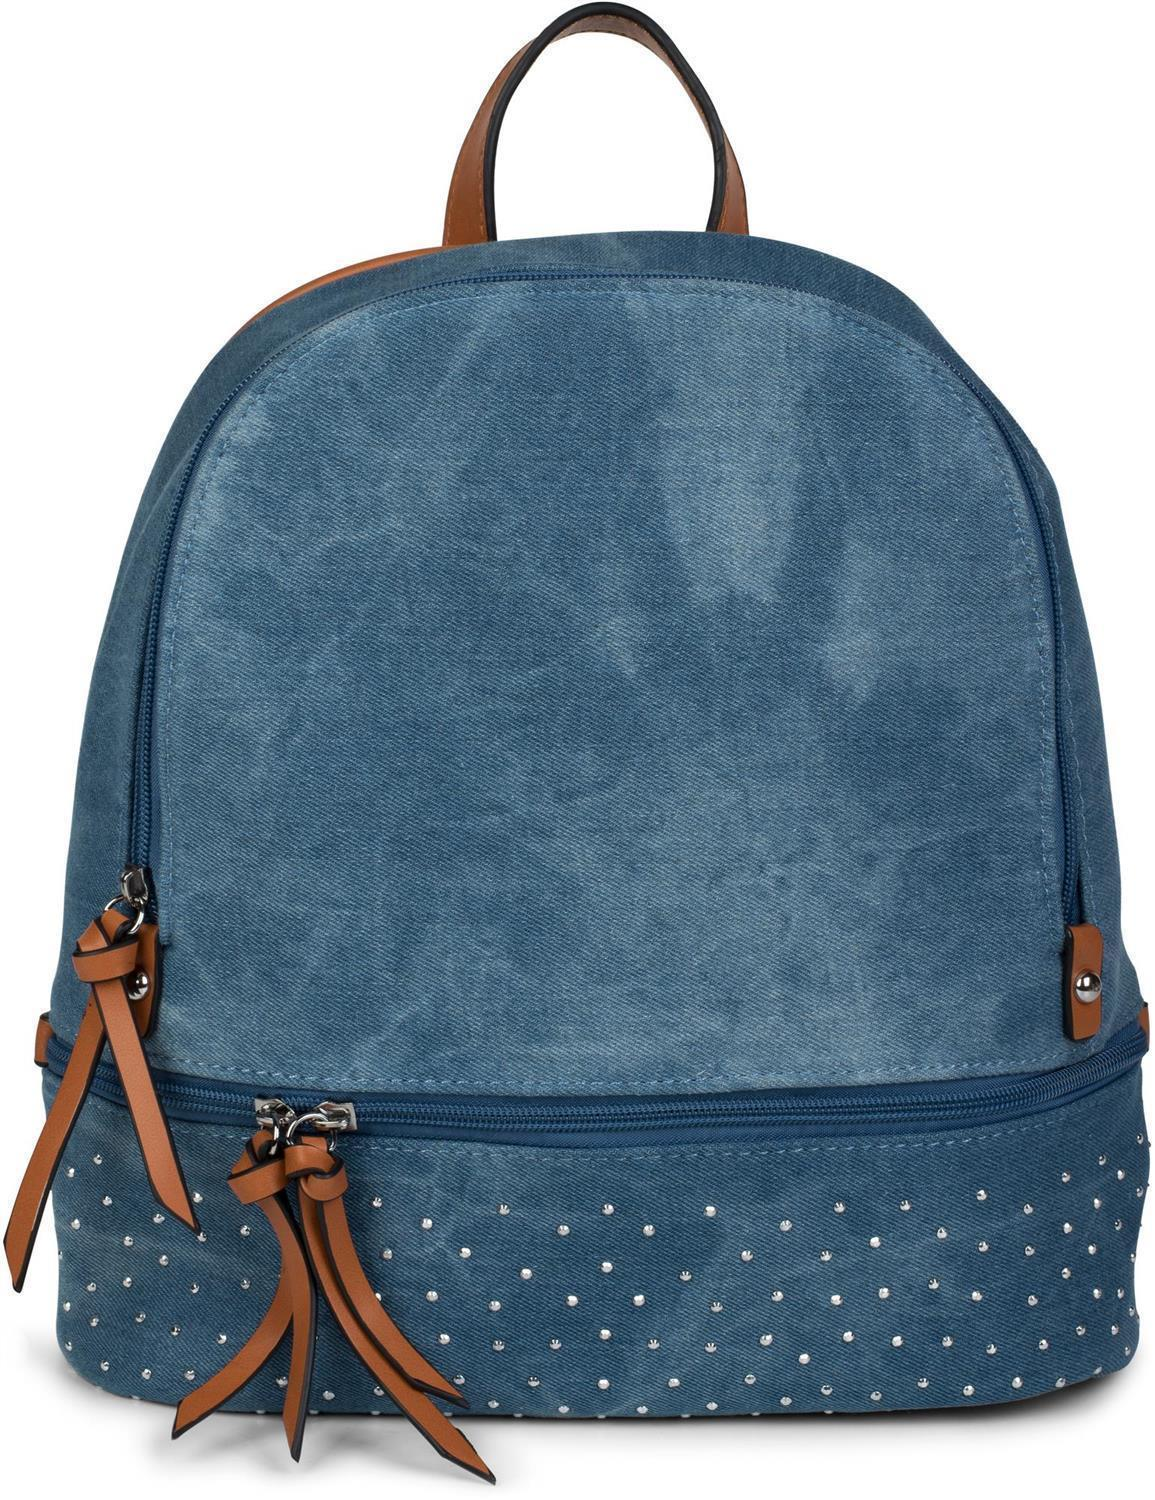 jeans rucksack mit strass 1230. Black Bedroom Furniture Sets. Home Design Ideas